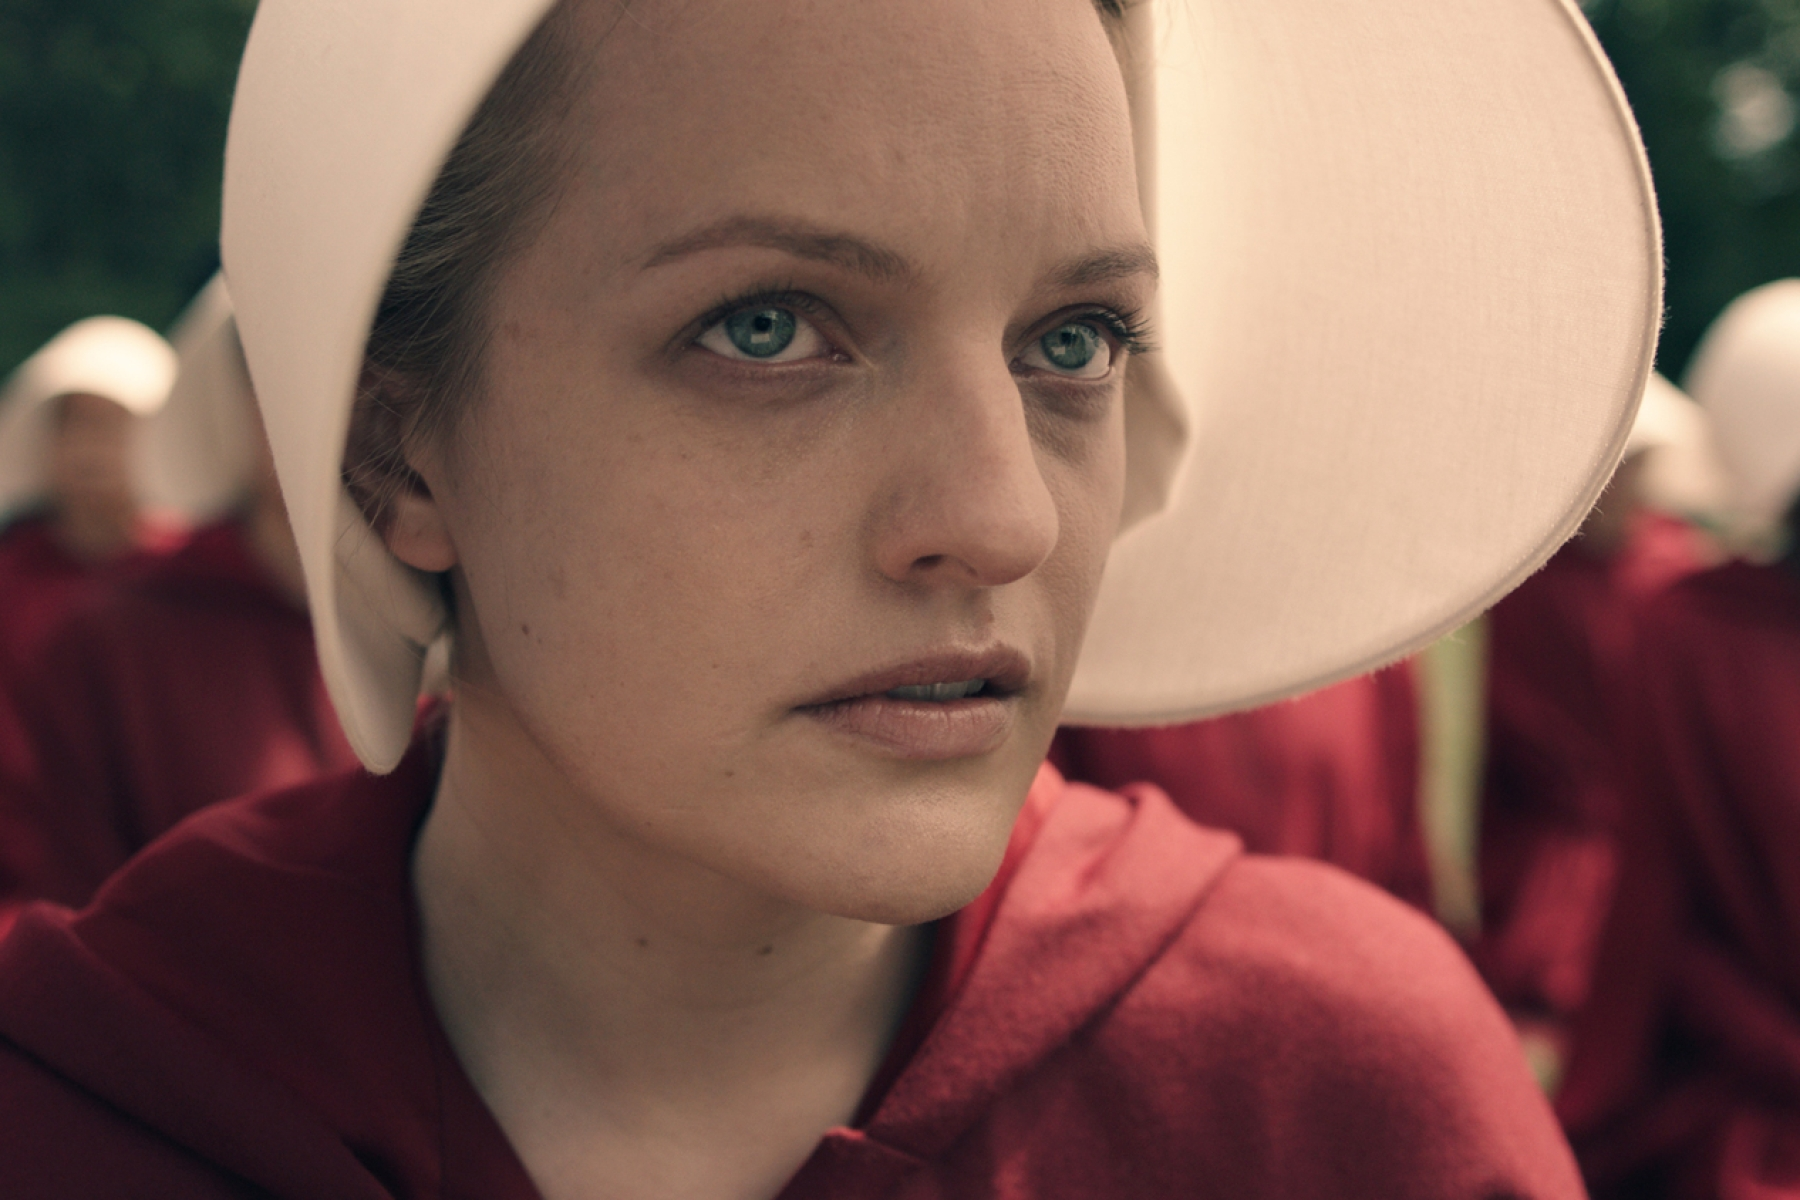 The Handmaid's Tale': TV's Most Chilling Trump-Era Series ...